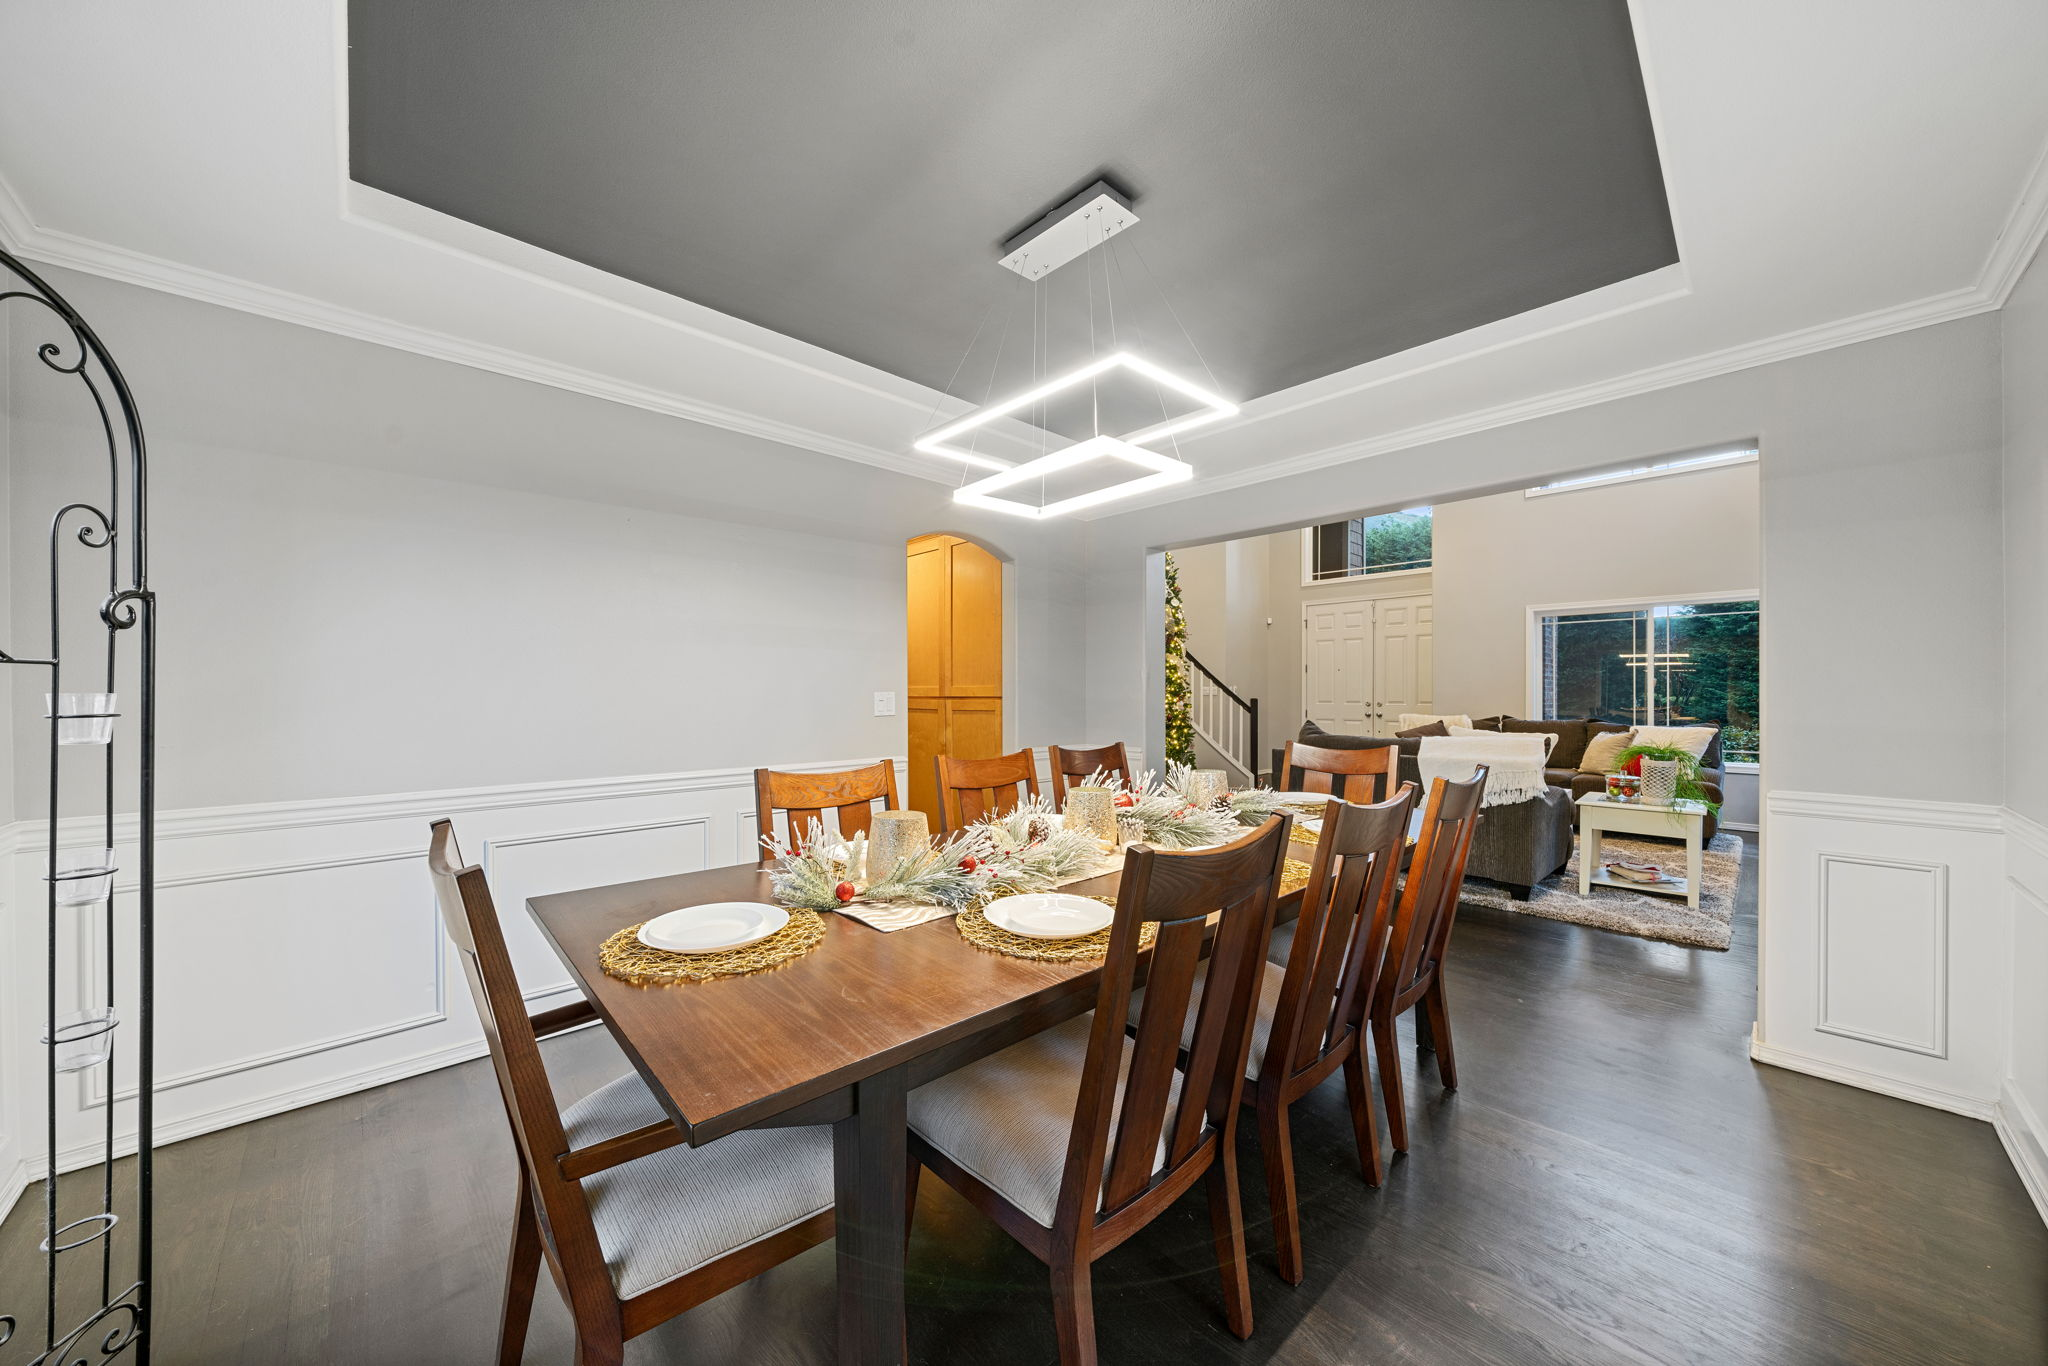 Lots of room for large dining room and entertaining!